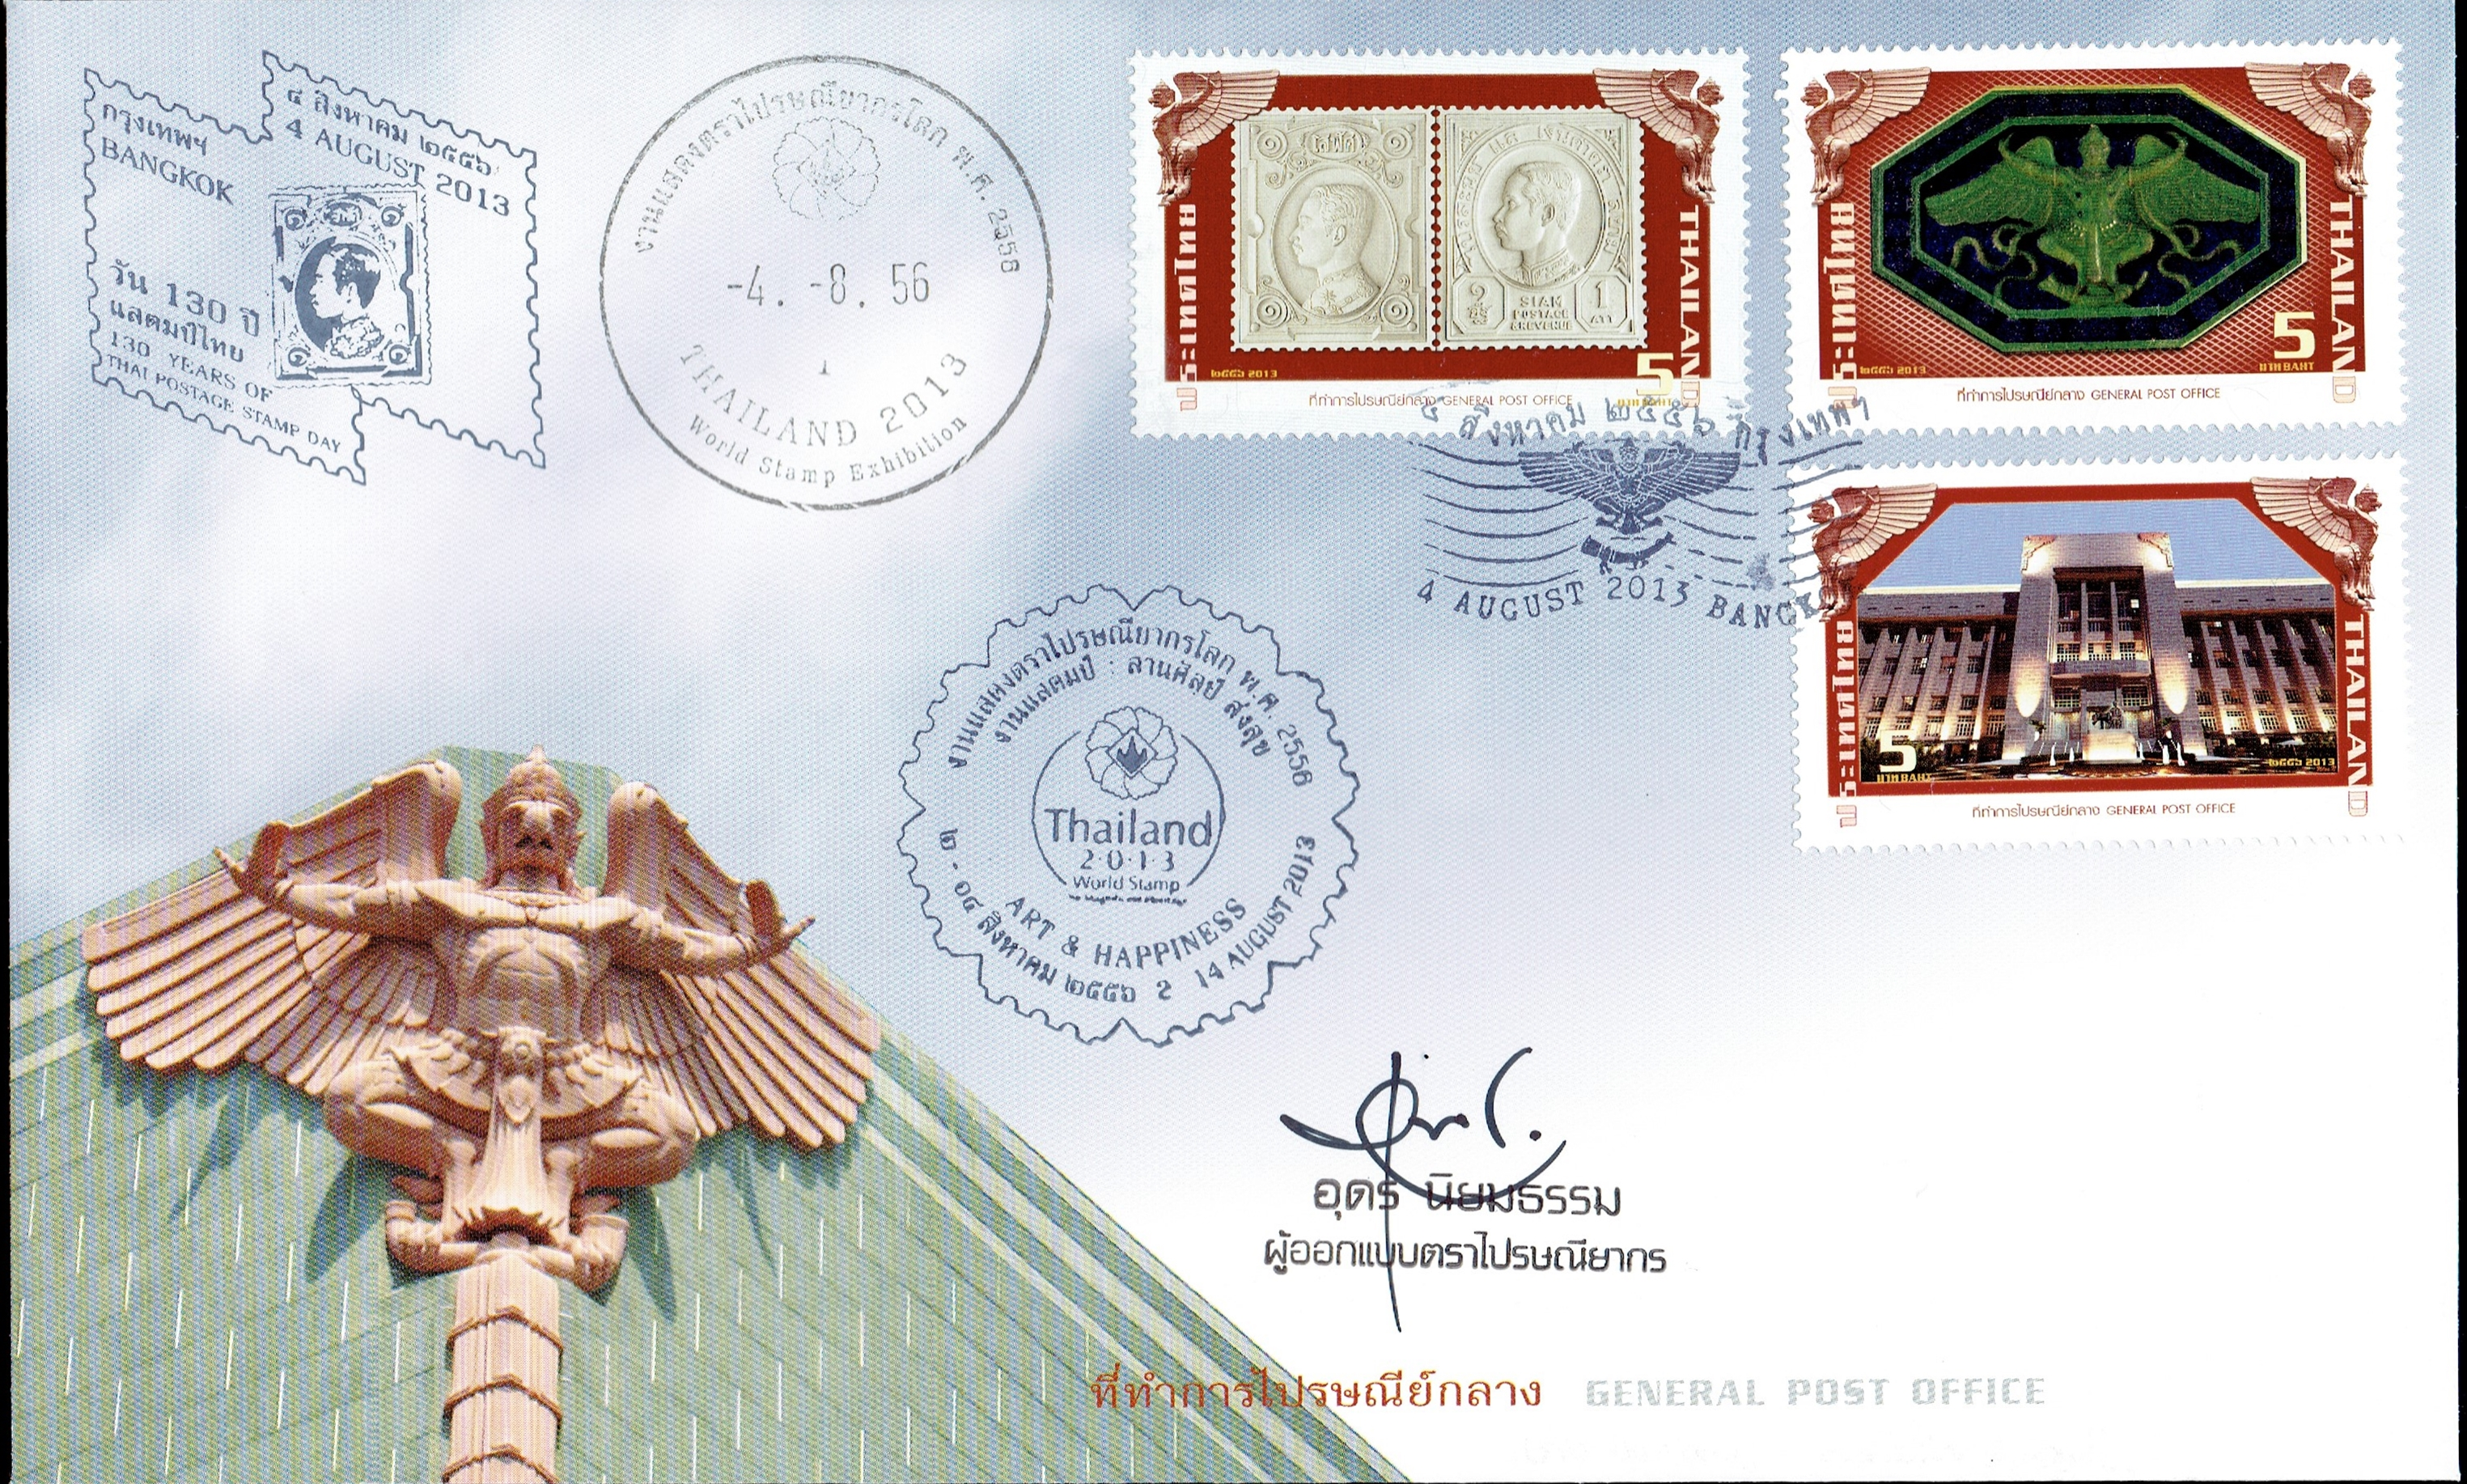 Thailand - Michel #3326A-3328A (2013) first day cover with THAILAND 2013 World Stamp Exhibition cancellations; autographed by stamp designer